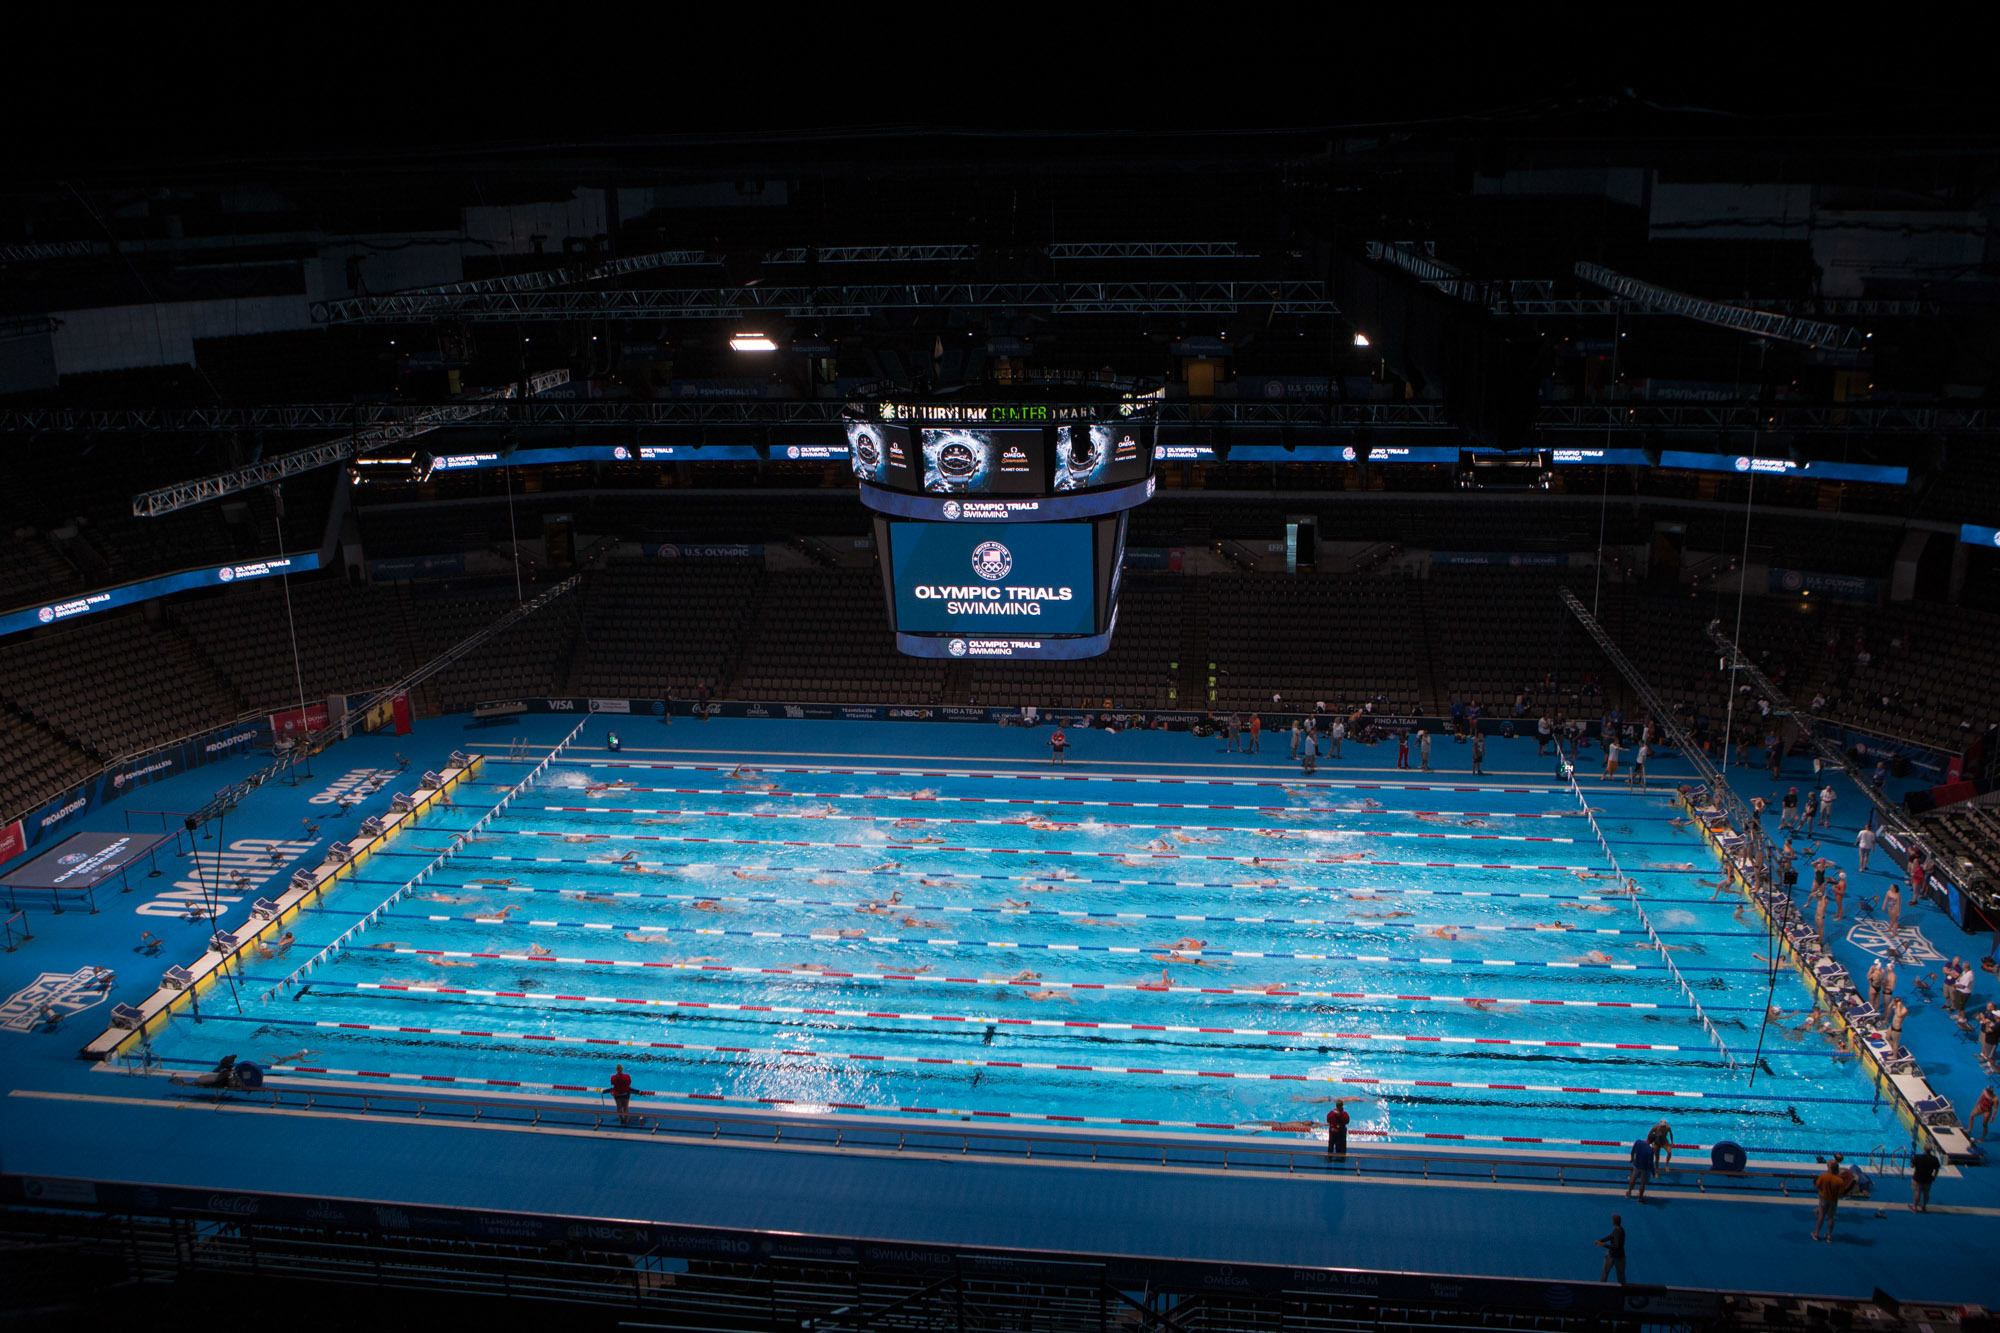 2016 olympic trials competition pool build video - Olympic Swimming Pool 2016